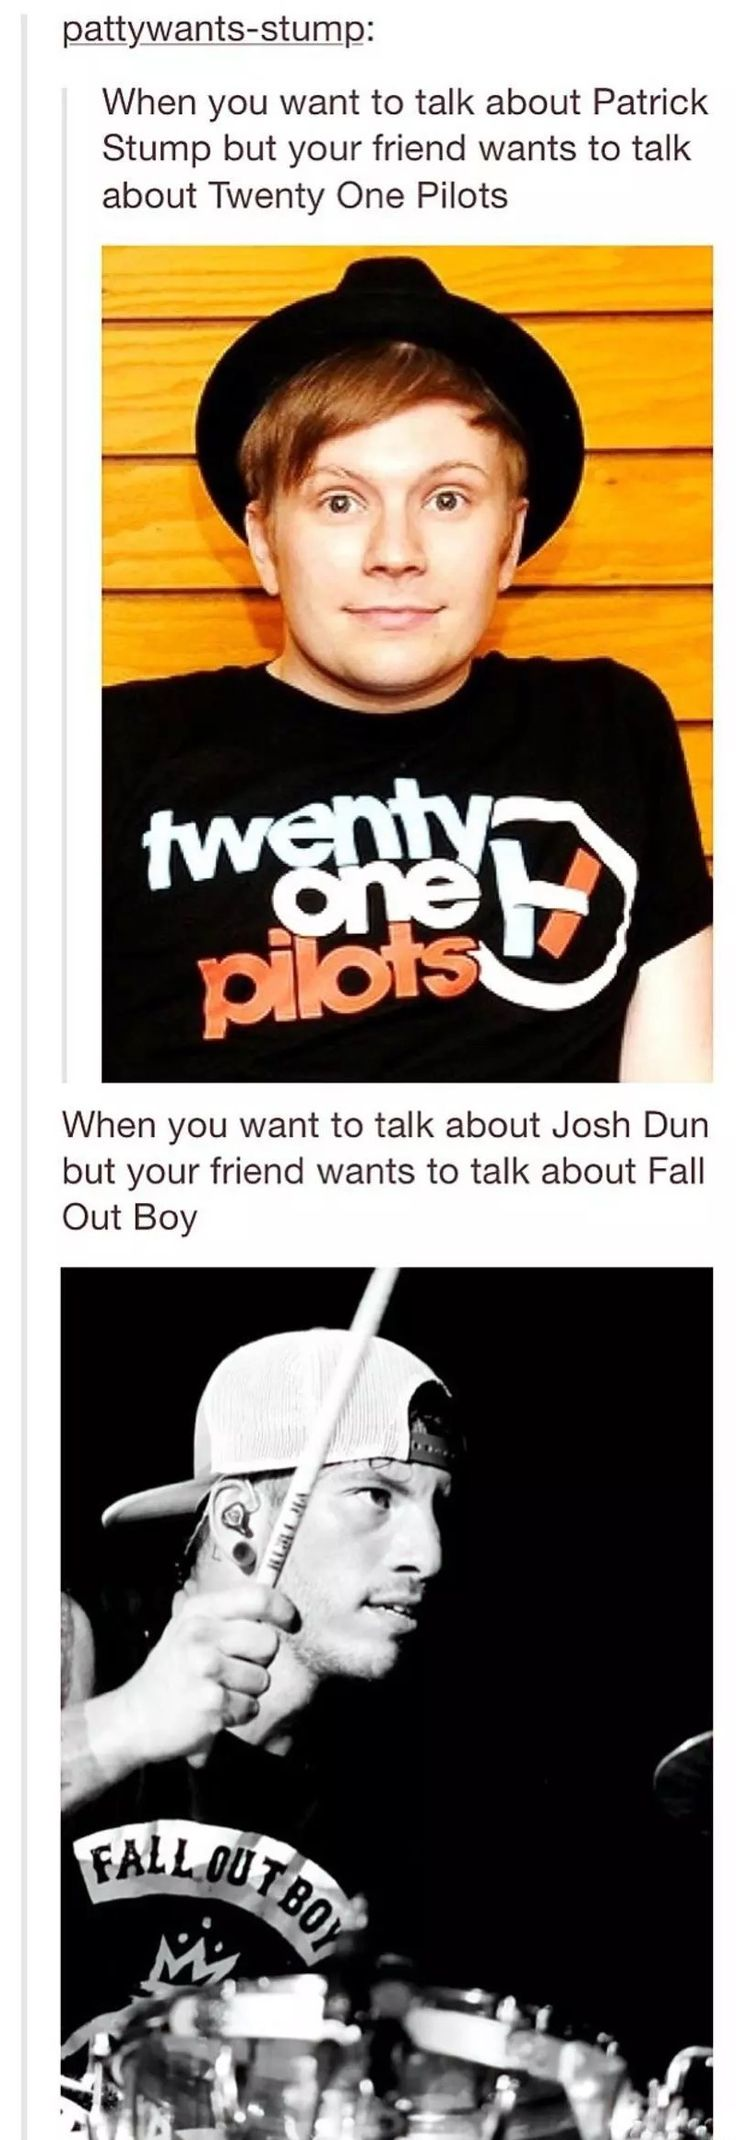 Twenty one pilots and fall out boy. I love how more people are starting to appreciate TØP!!